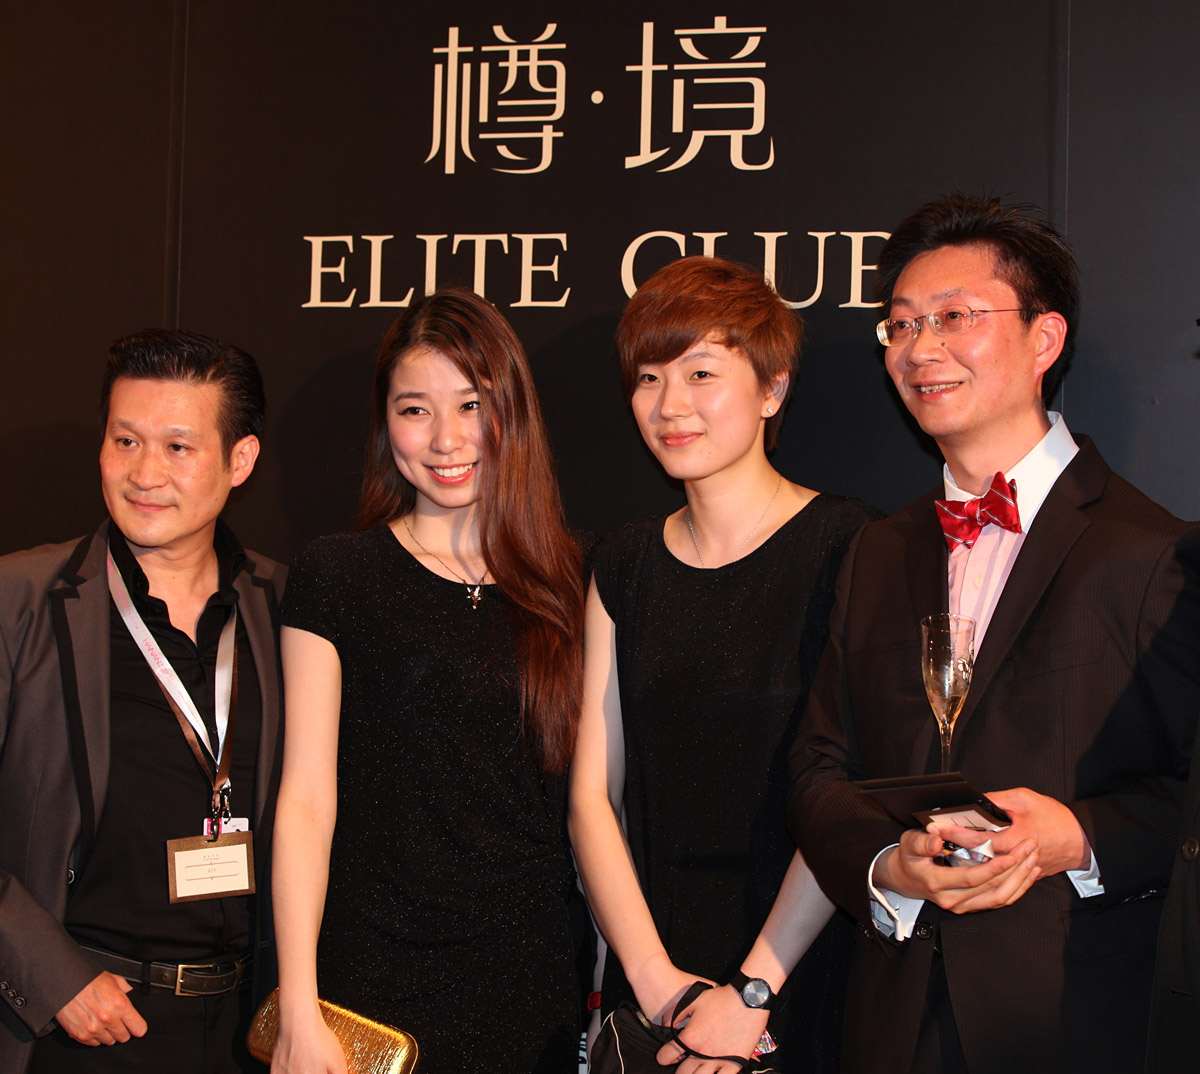 Gala Dinner, Elite Club, Hainan, Boat Fair